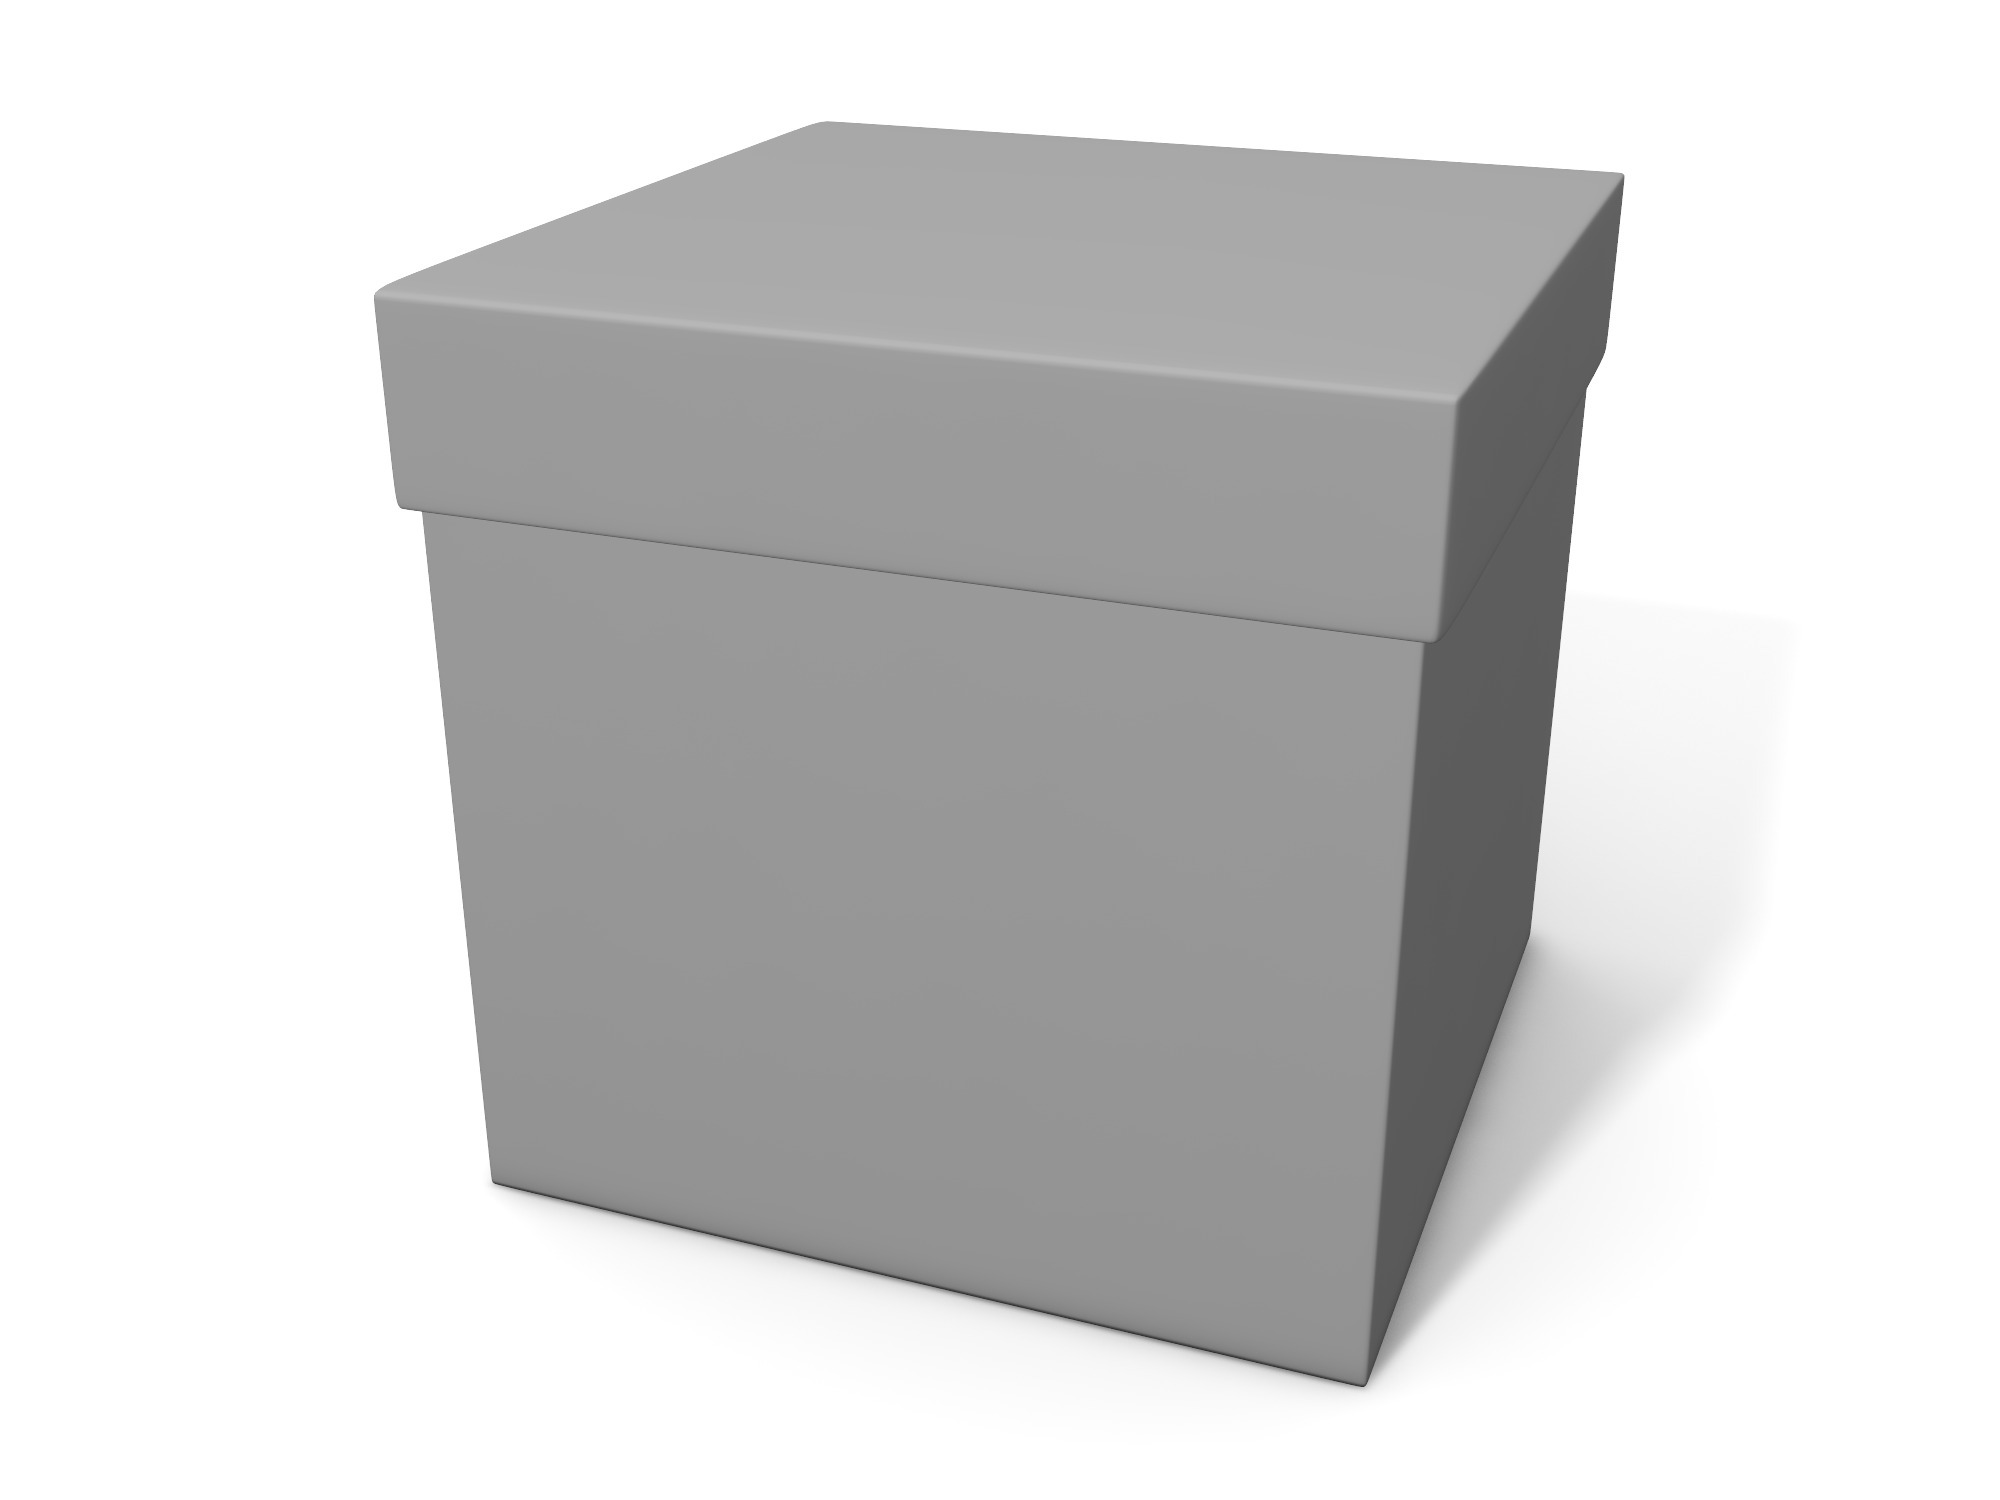 Box with lid 50 × 50 × 50 - 3D design by assets Nov 6, 2018